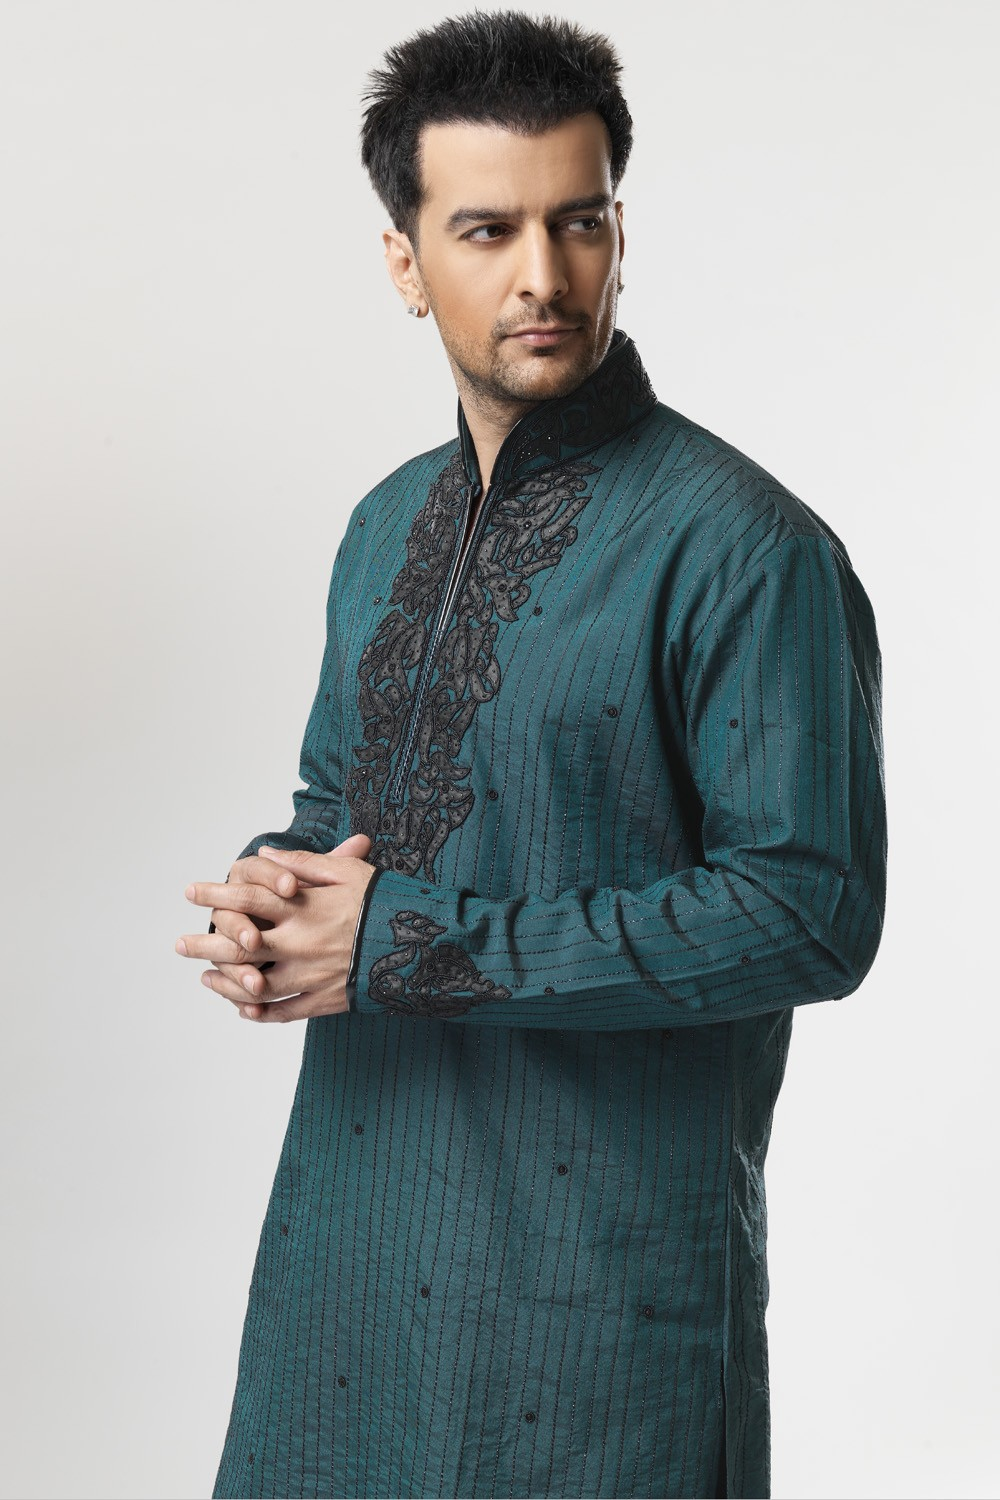 pakistani dress style men